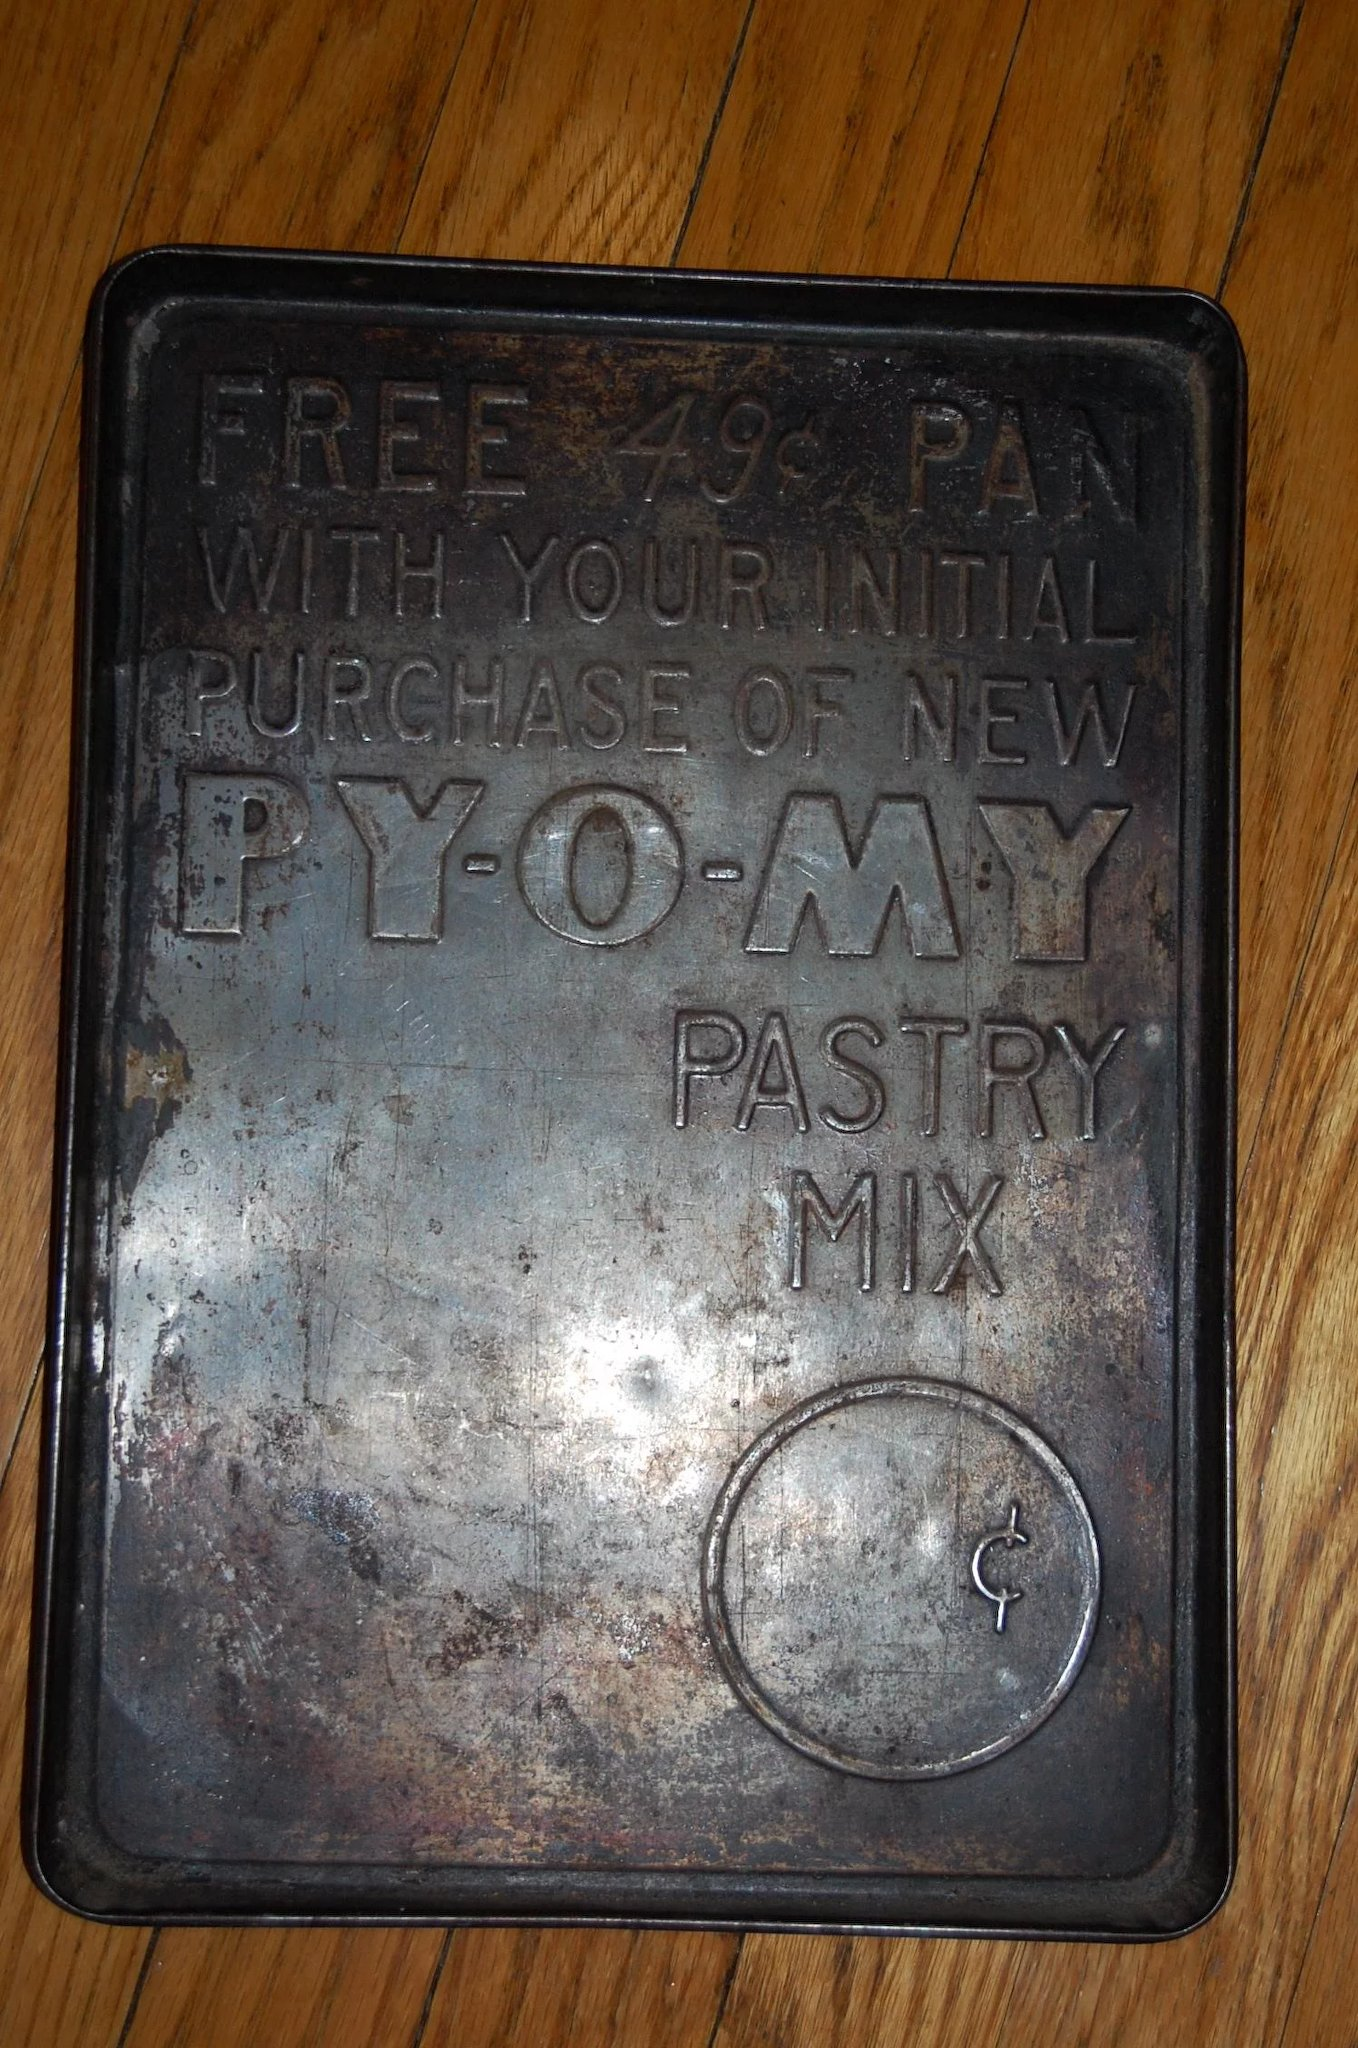 Vintage Py O My Pastry Mix Advertising Baking Pan Starr